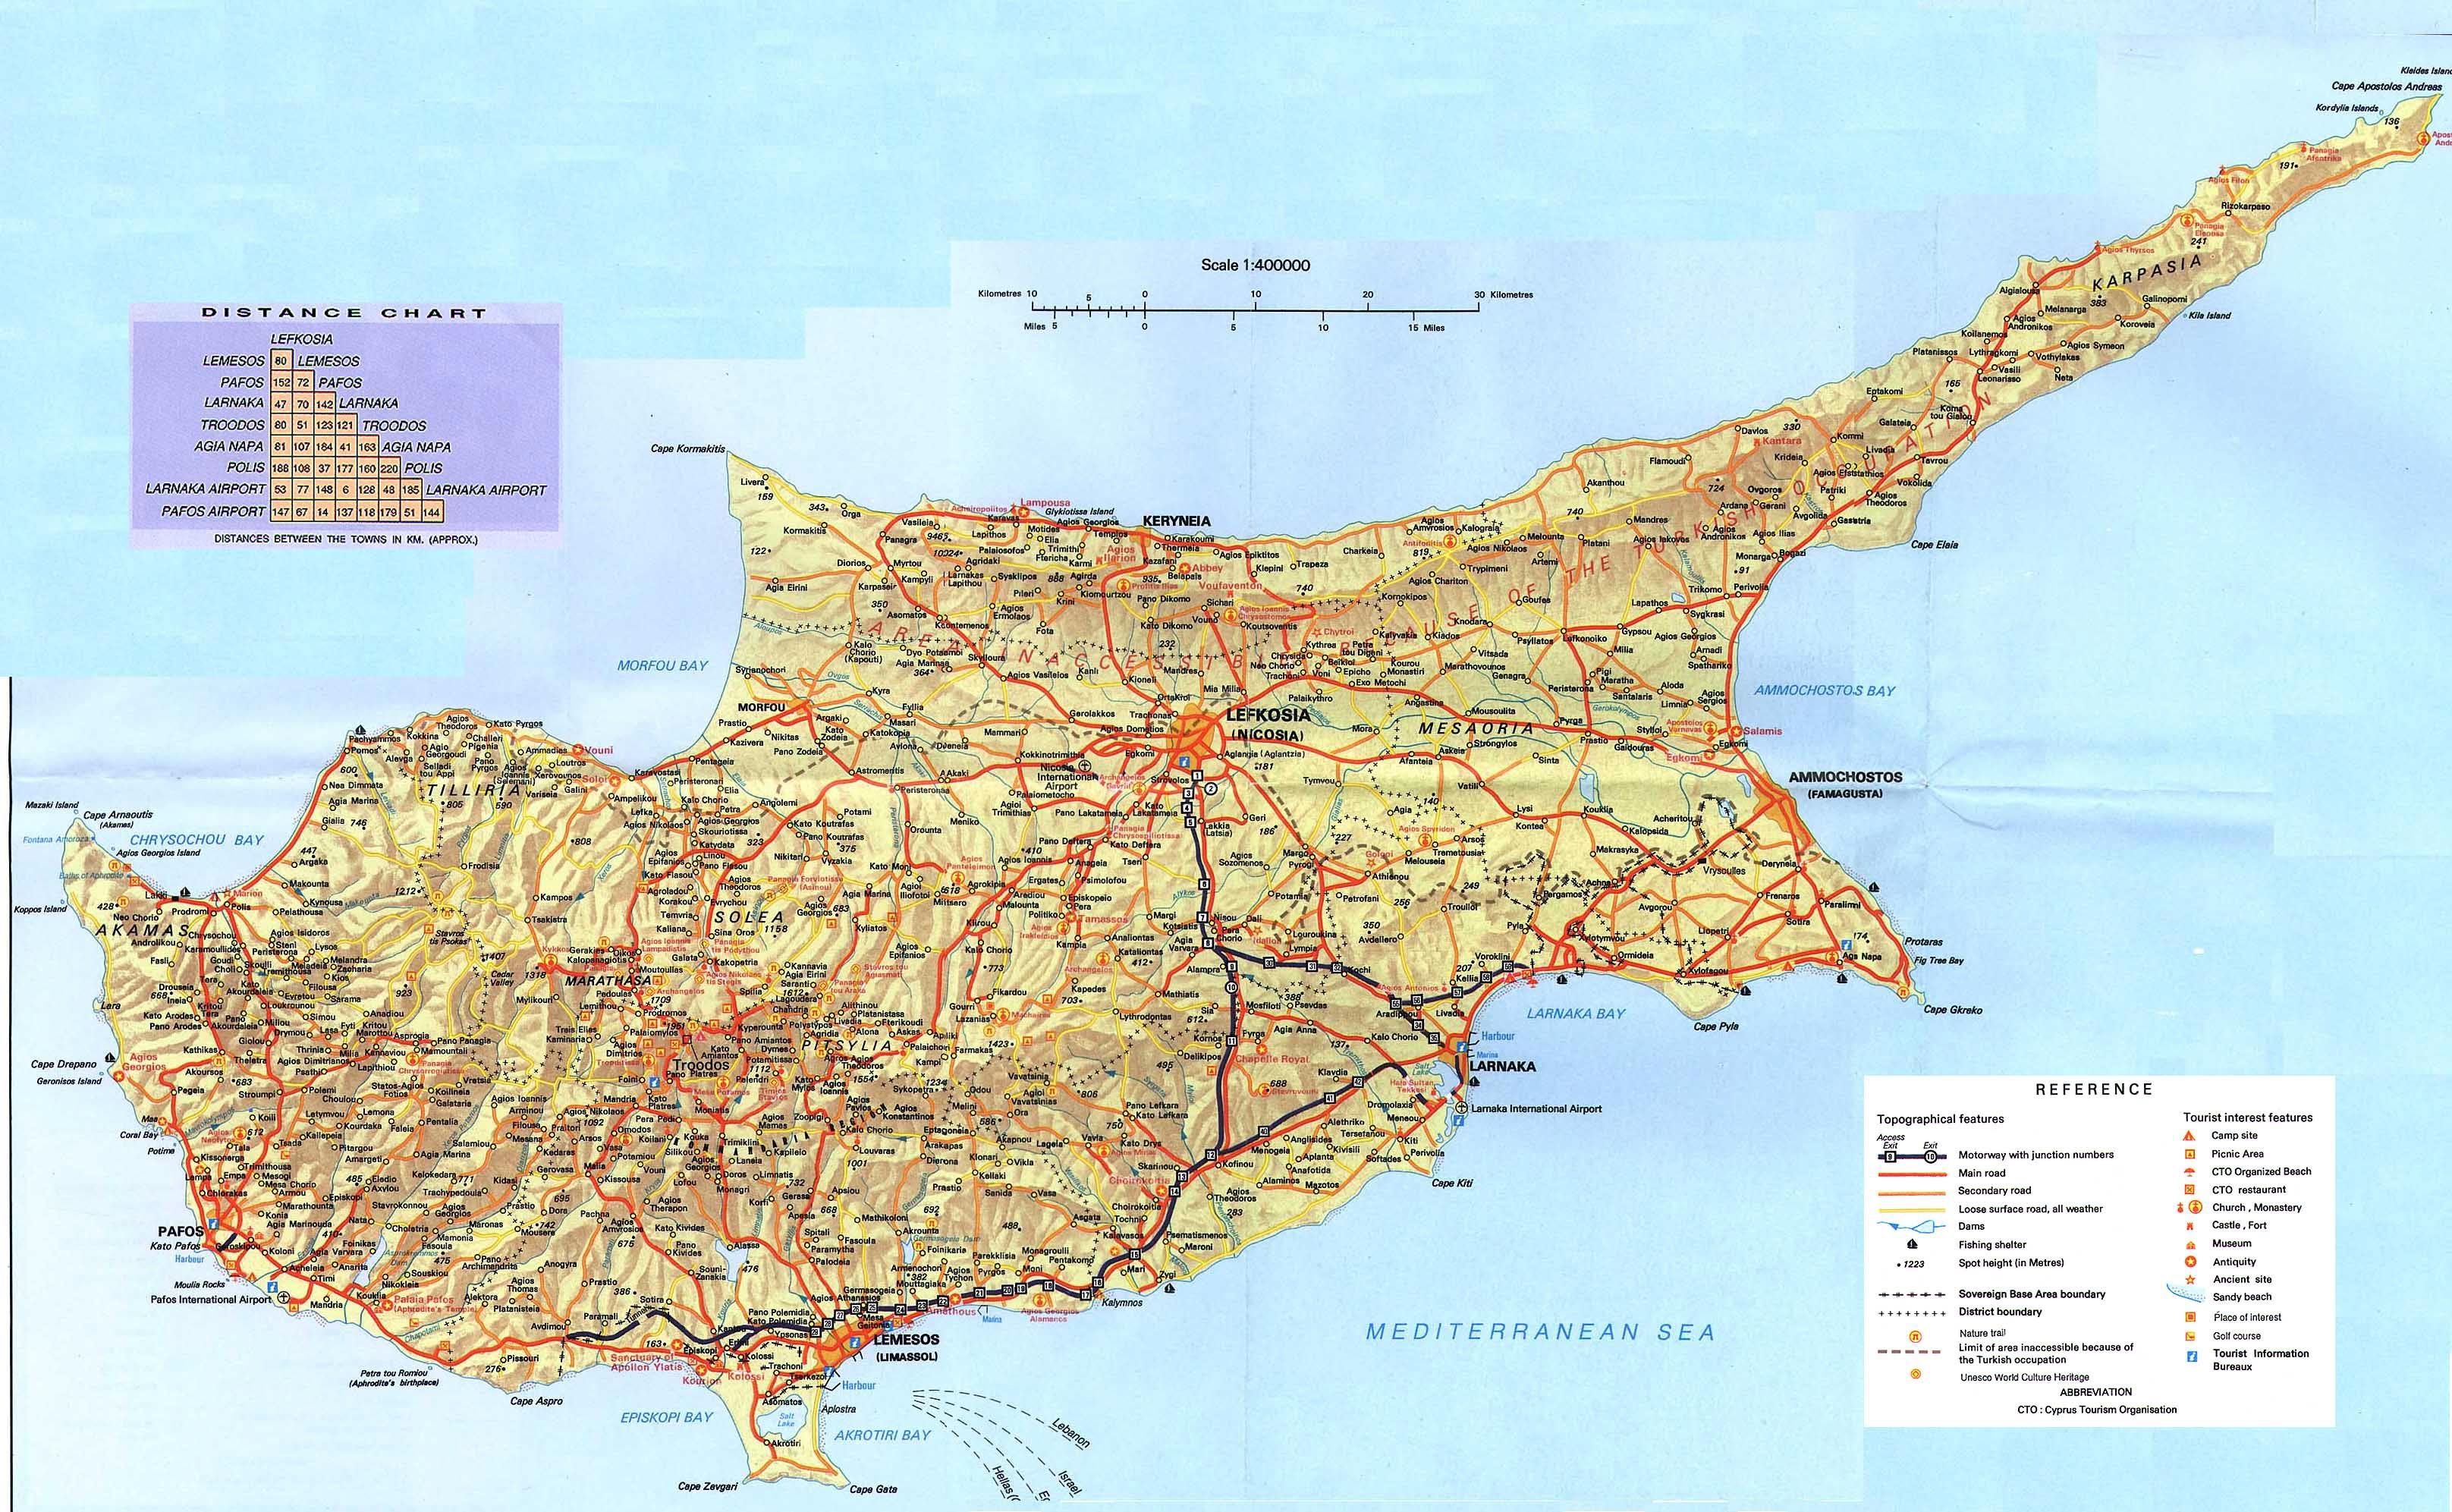 Cyprus Maps Printable Maps Of Cyprus For Download - Cyprus map